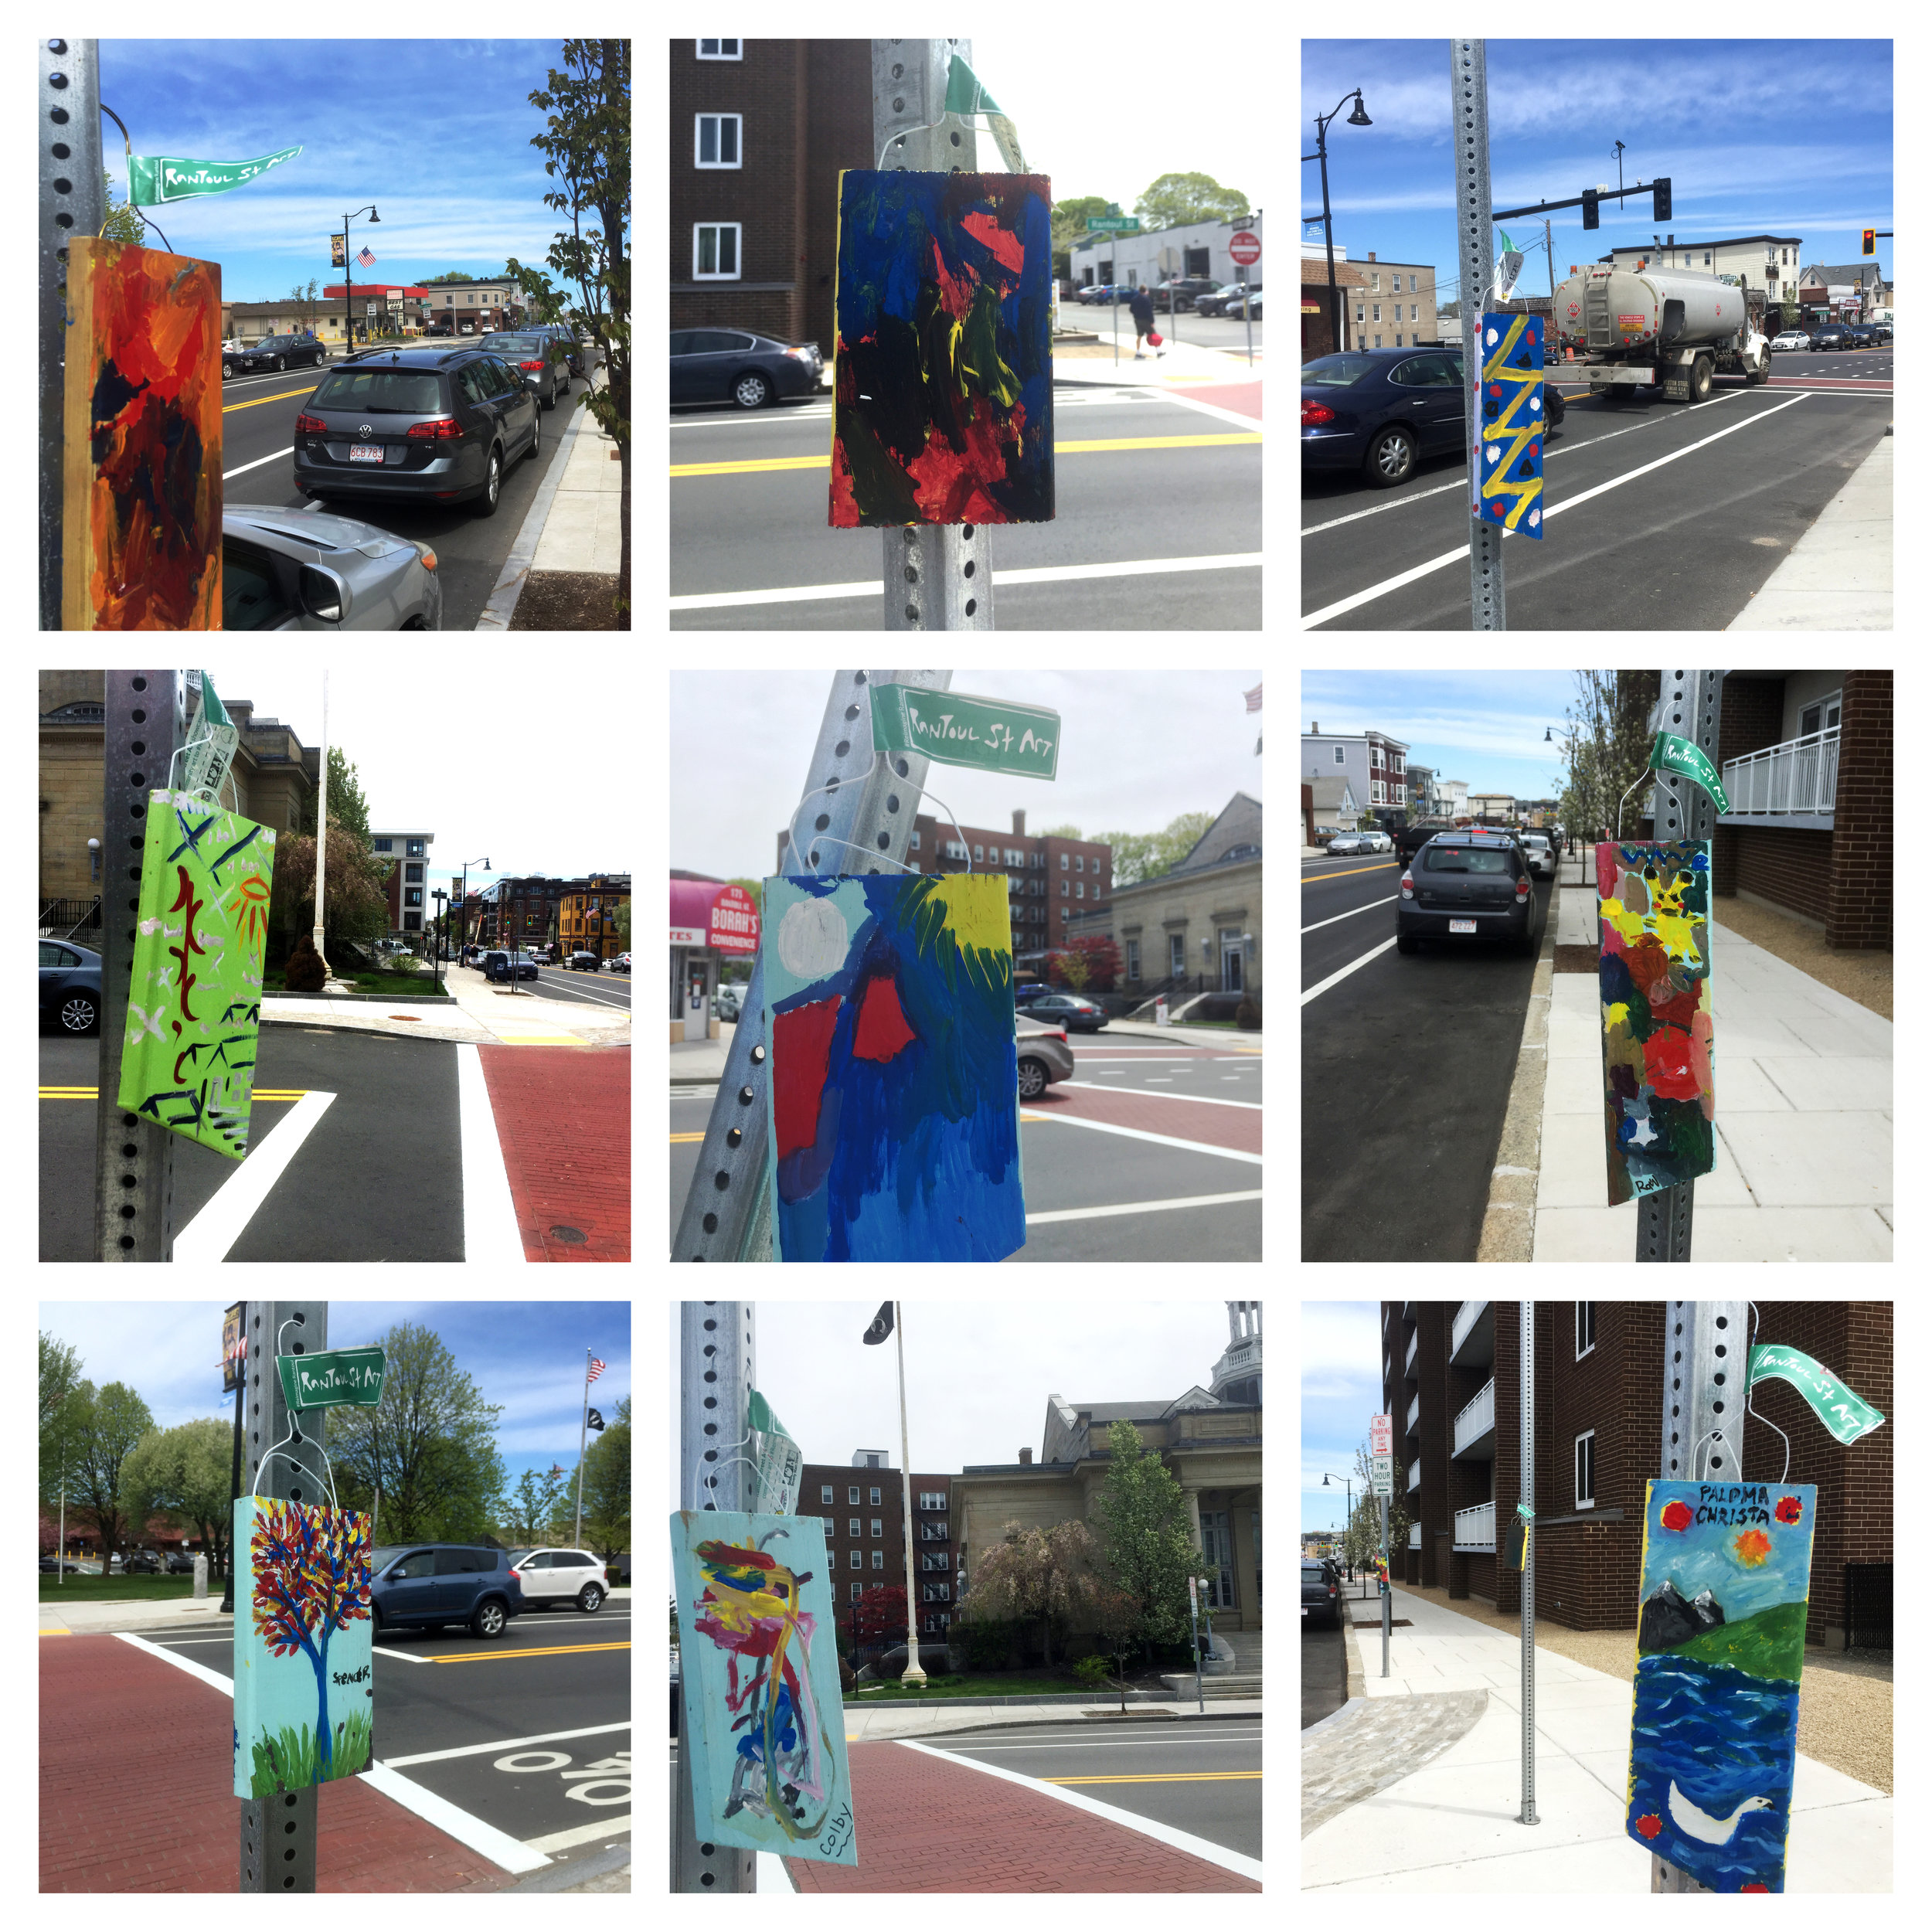 Rantoul Street Art are now installed on Rantoul Street from Railroad Ave to Federal St